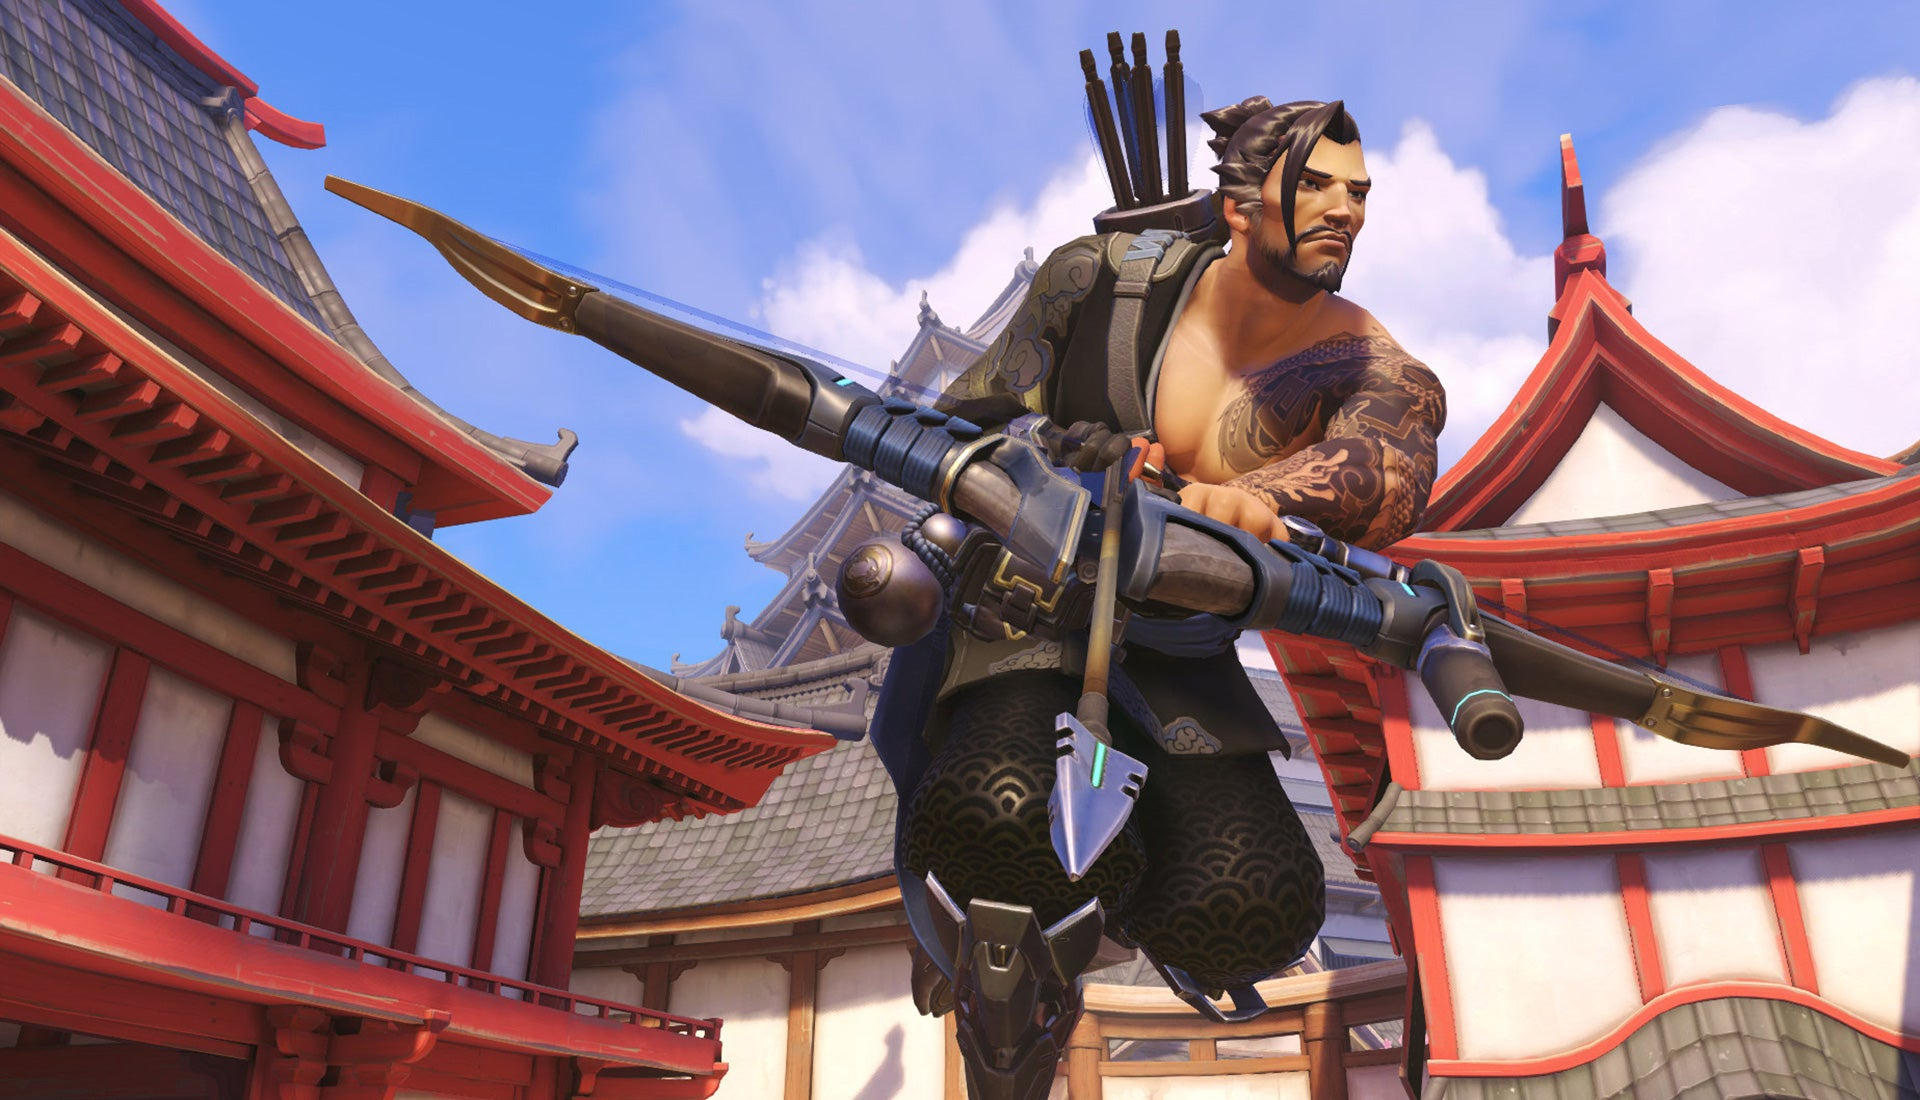 Overwatch Is Still Giving Out 'Play of the Game' For Doing Nothing